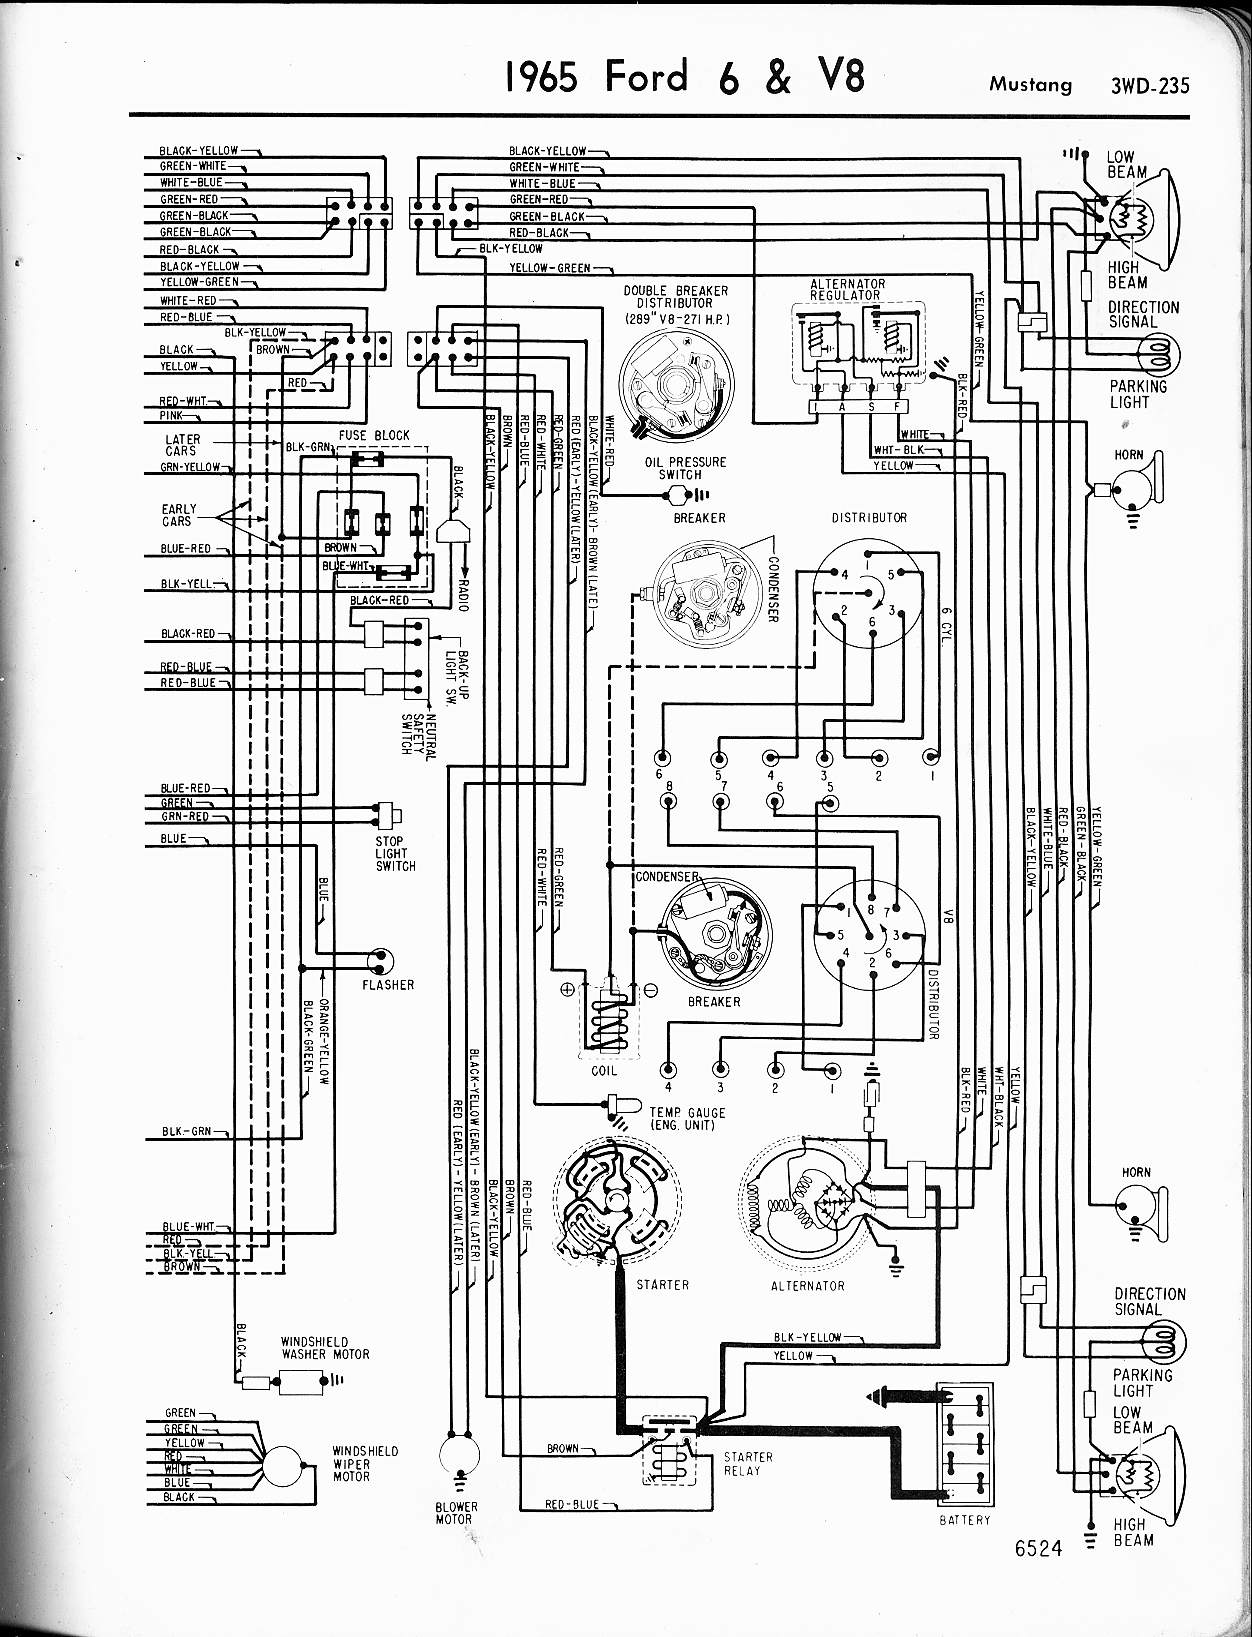 MWire5765 235 100 [ mustang horn wiring diagram ] 63 impala fuse box on 63 mustang wiring harness diagram at aneh.co